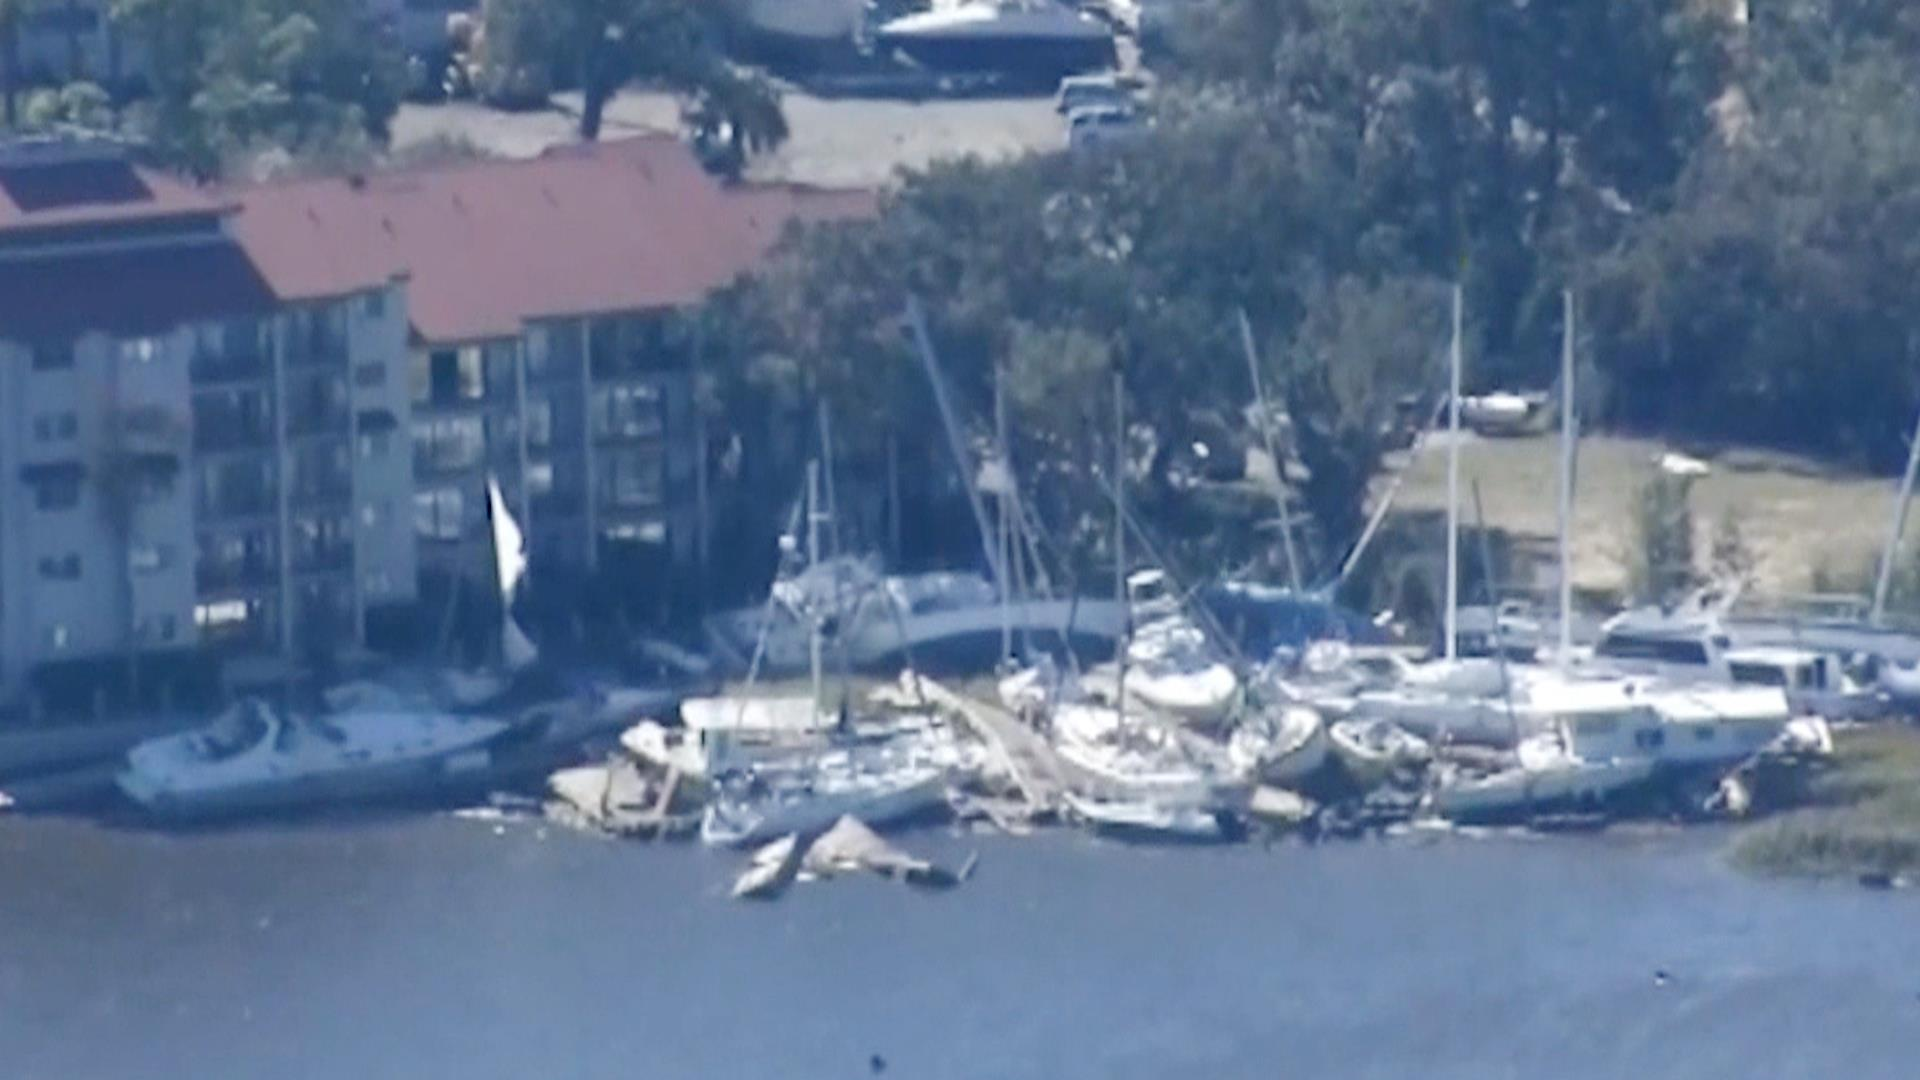 See Storm Damage In Hilton Head From Hurricane Matthew